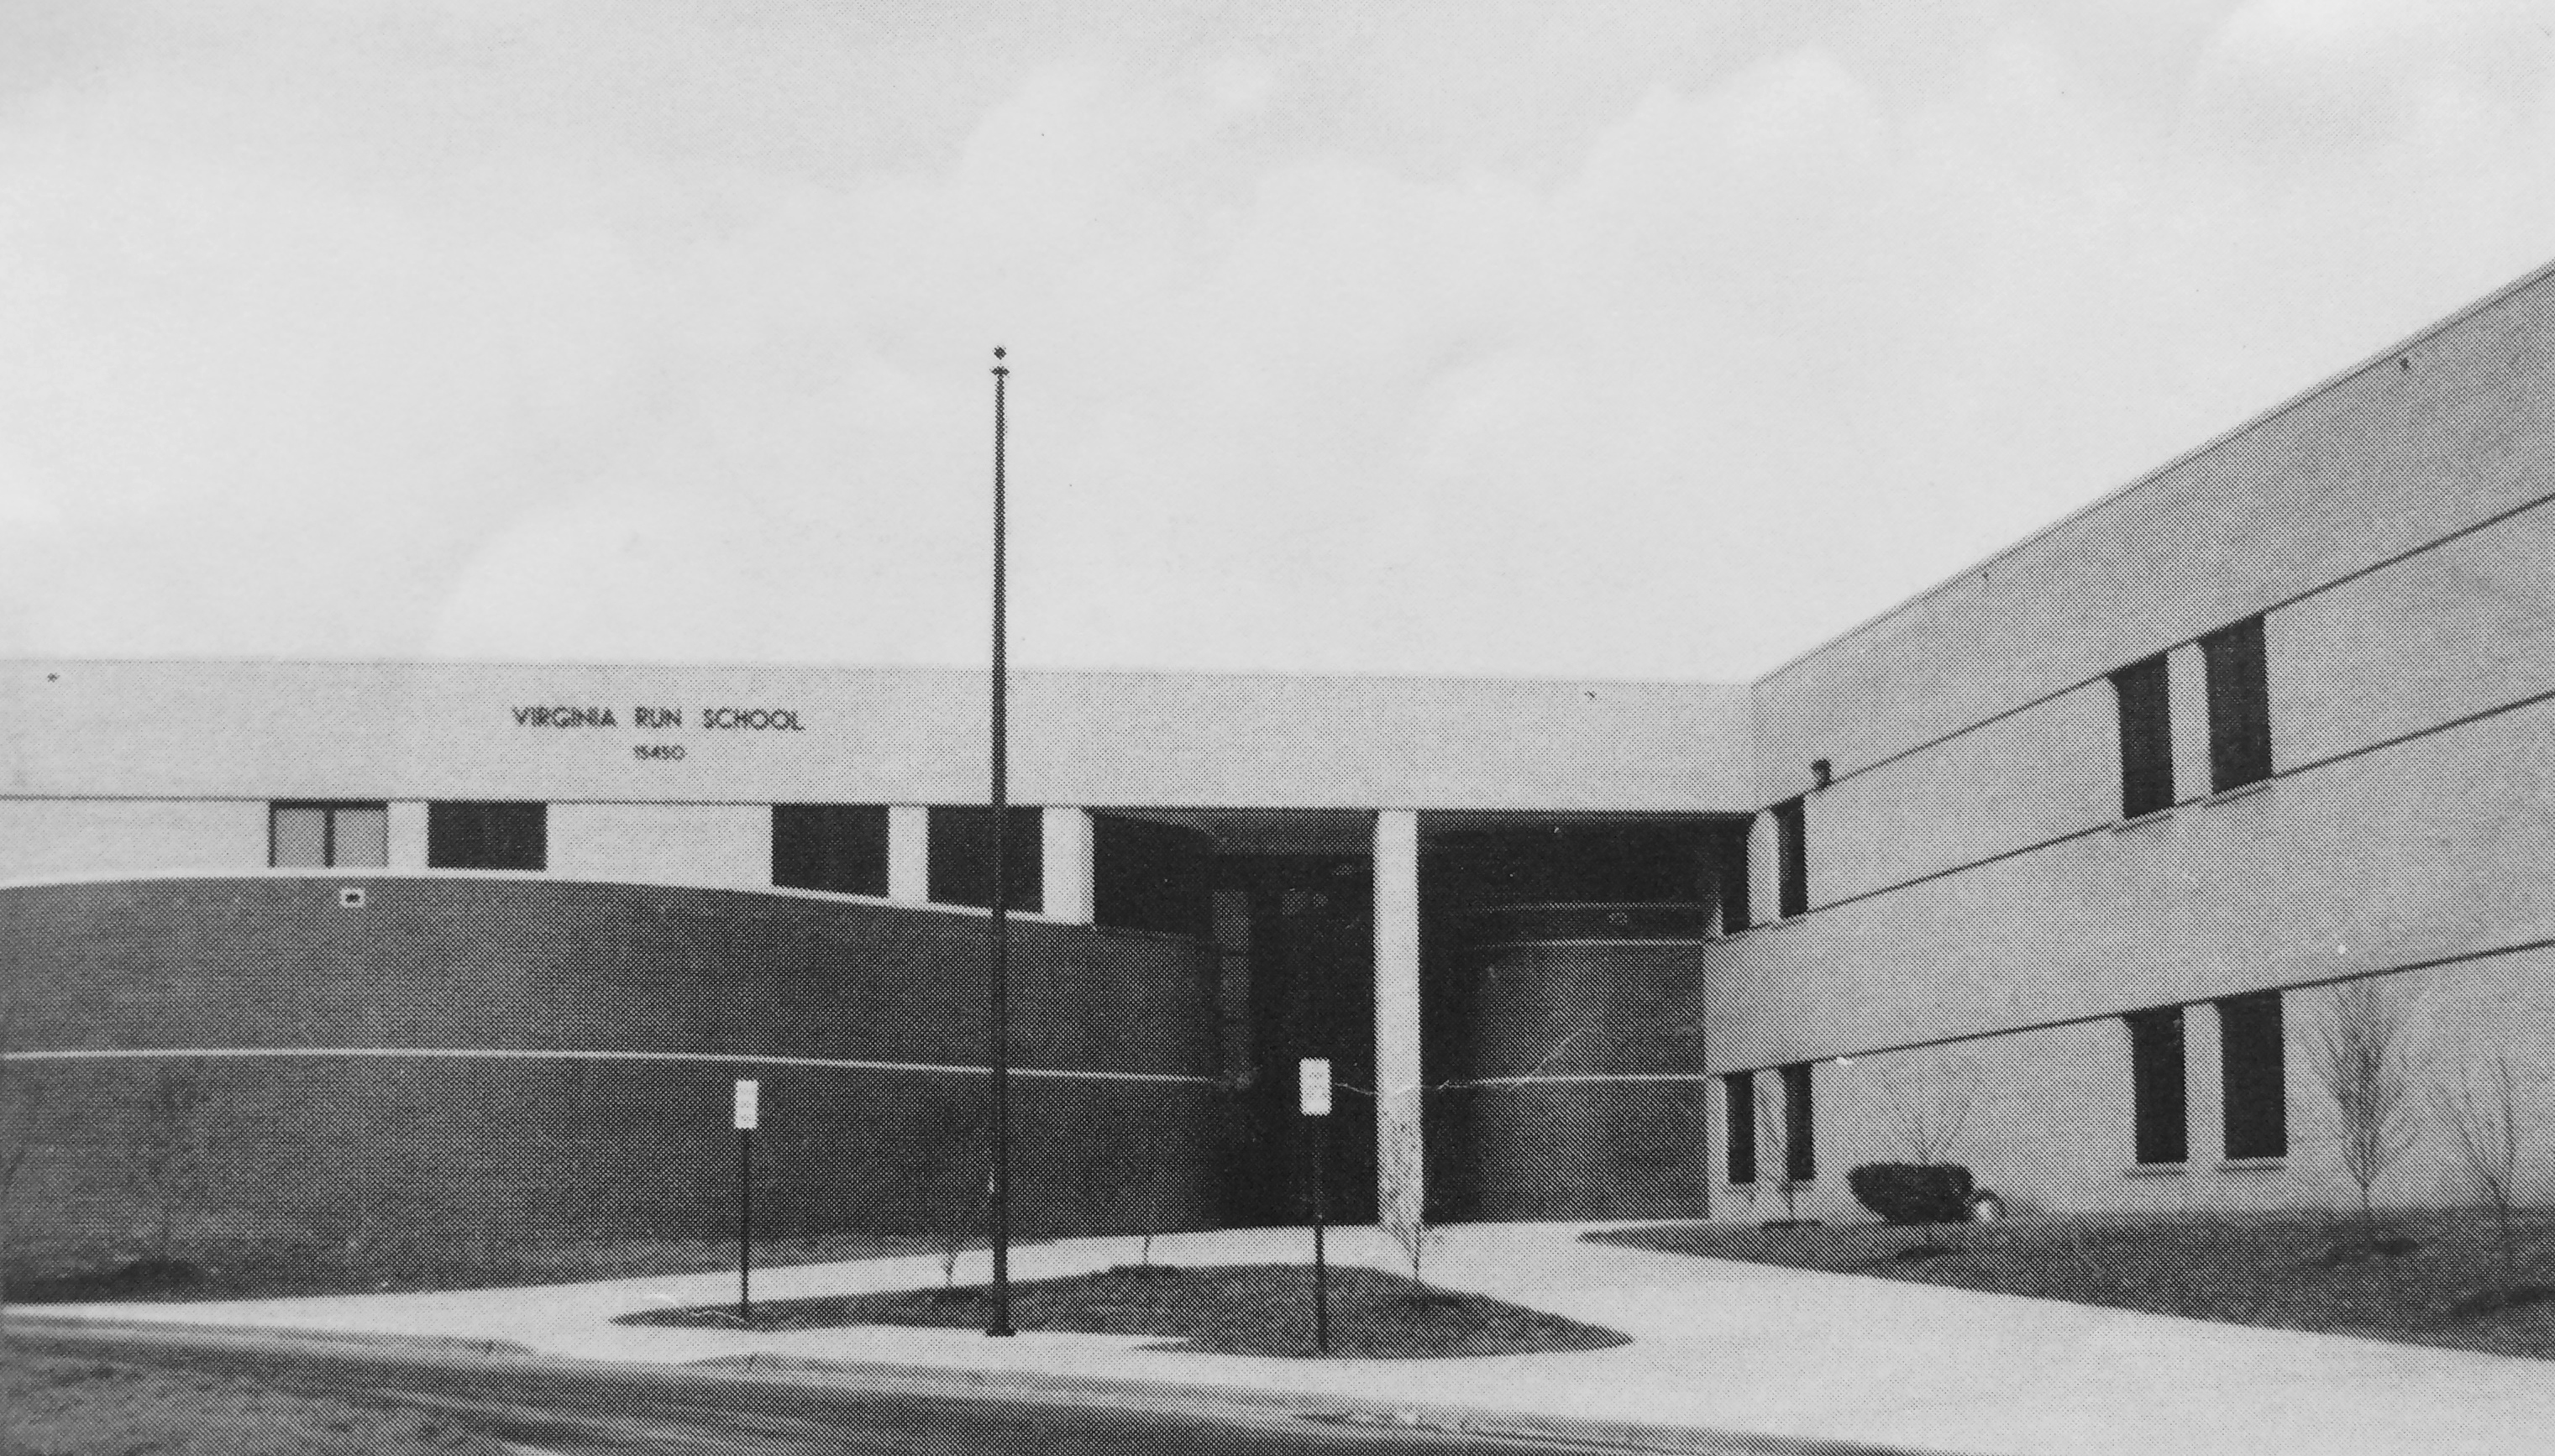 Black and white photograph of Virginia Run Elementary School, taken from our 1989-1990 yearbook. The photograph shows the main entrance to the building. The trees out front have been freshly planted and are not yet in leaf.